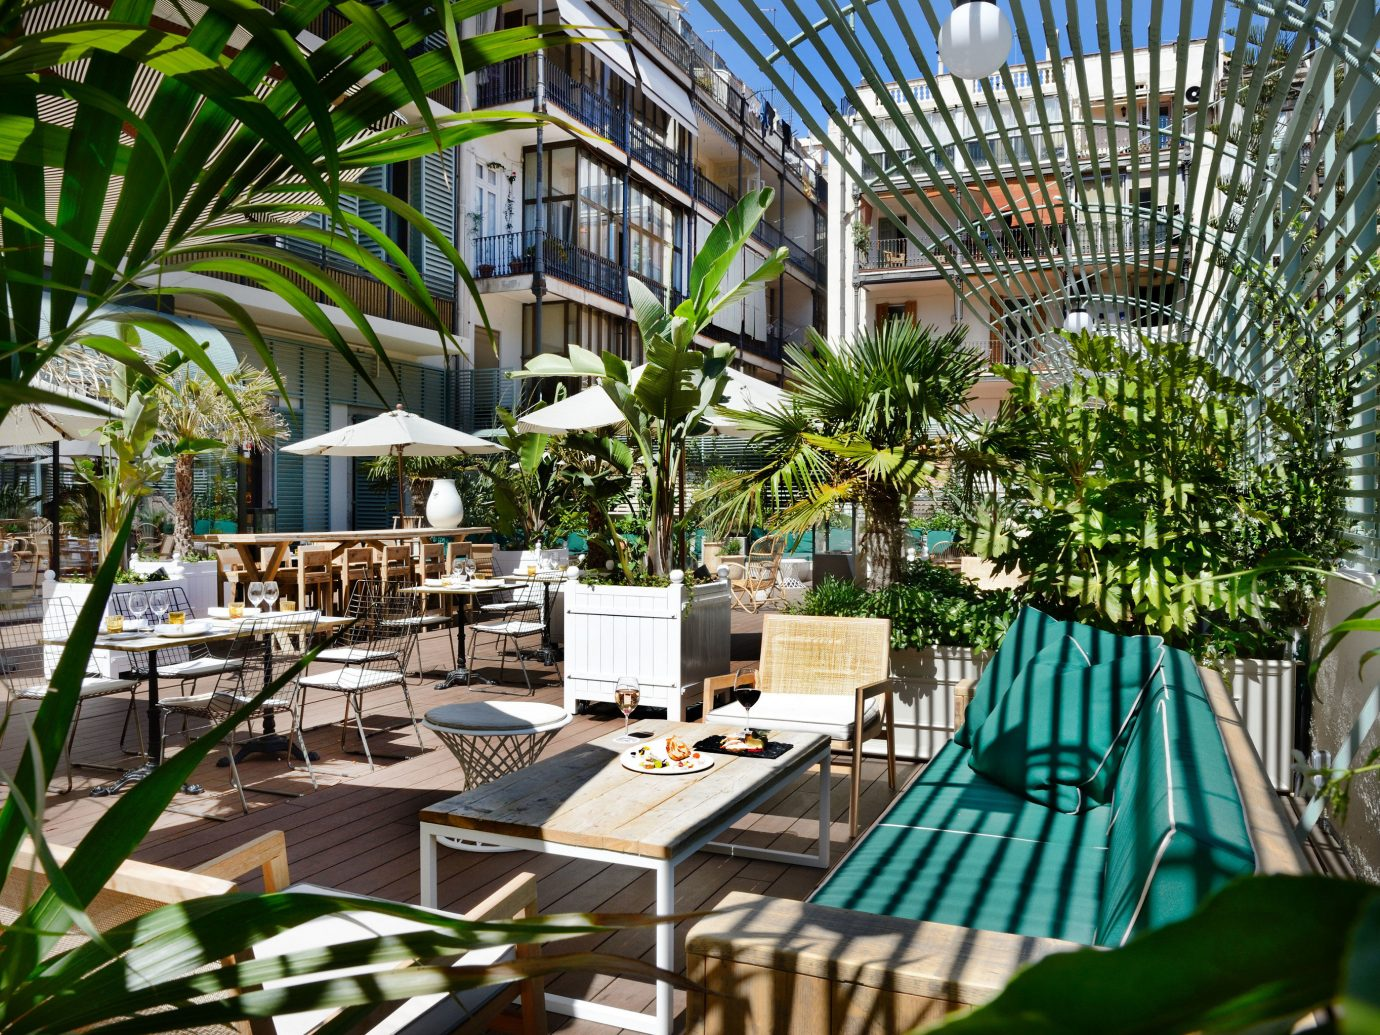 Barcelona Hotels Spain Trip Ideas table tree outdoor plant chair Dining Resort green estate backyard arecales Garden Courtyard home condominium Jungle outdoor structure yard tropics swimming pool palm family restaurant furniture set